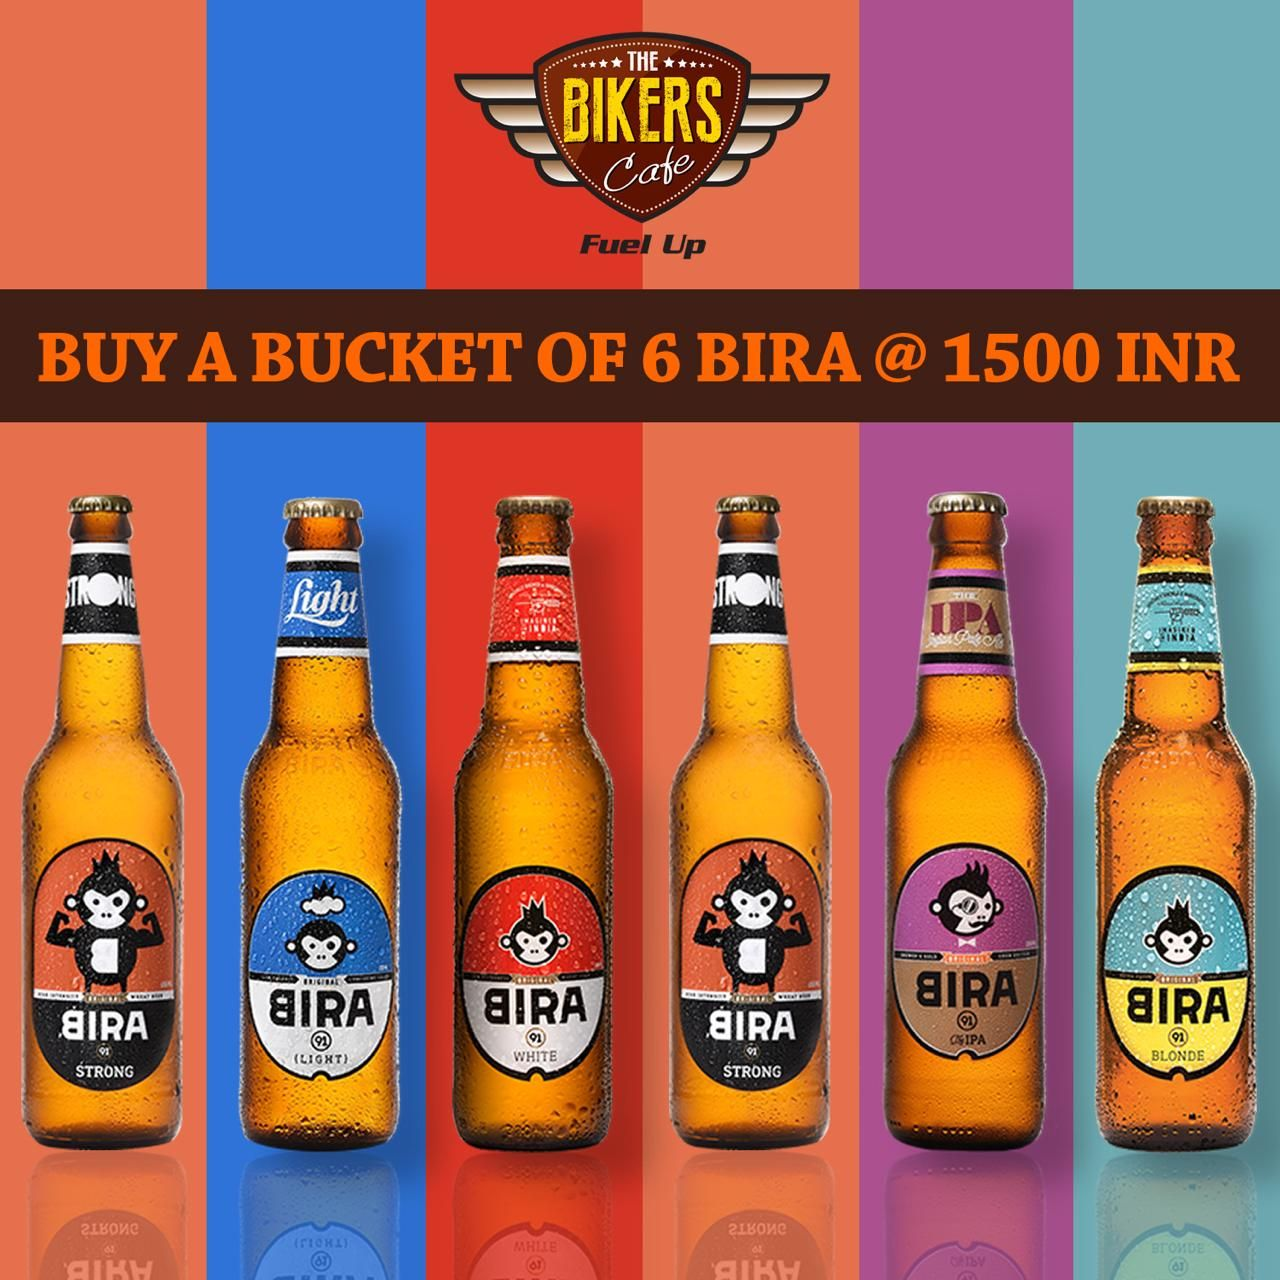 Ride In To Good Times With The Bikers Cafe Get A Bucket Of 6 Bira At 1500 Inr Only Call Us 9674565455 Or Visit Us At Www Thebikerscafe Co In Beer Games Beer Food